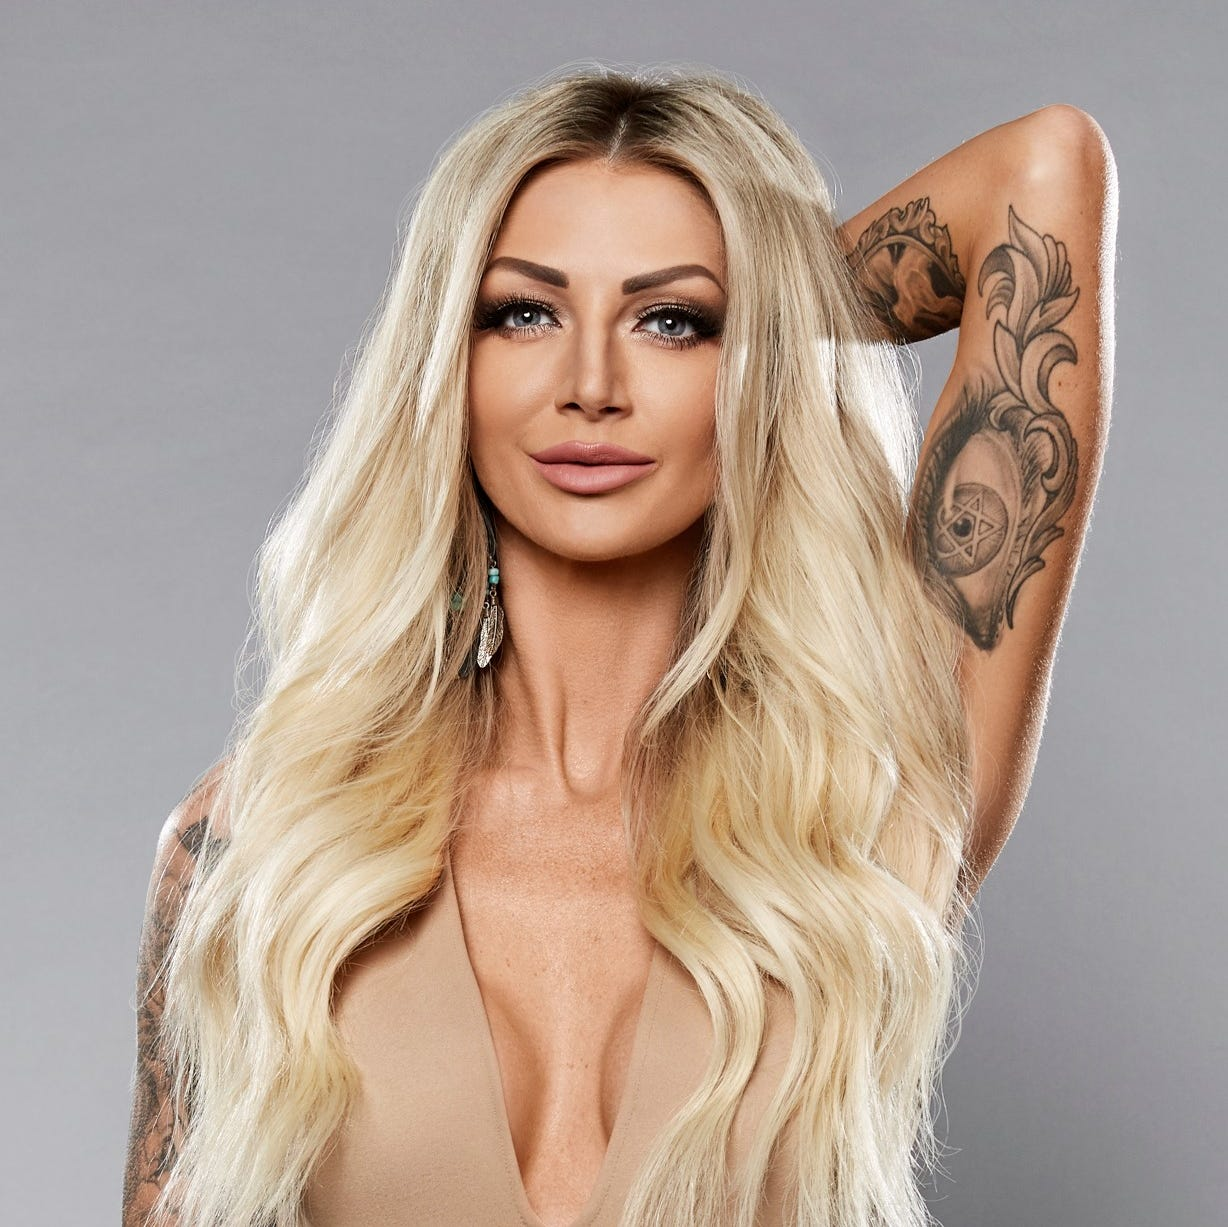 DJ Pauly D, Vinny and Alli: Green Bay woman to compete on MTV's 'Double Shot at Love'